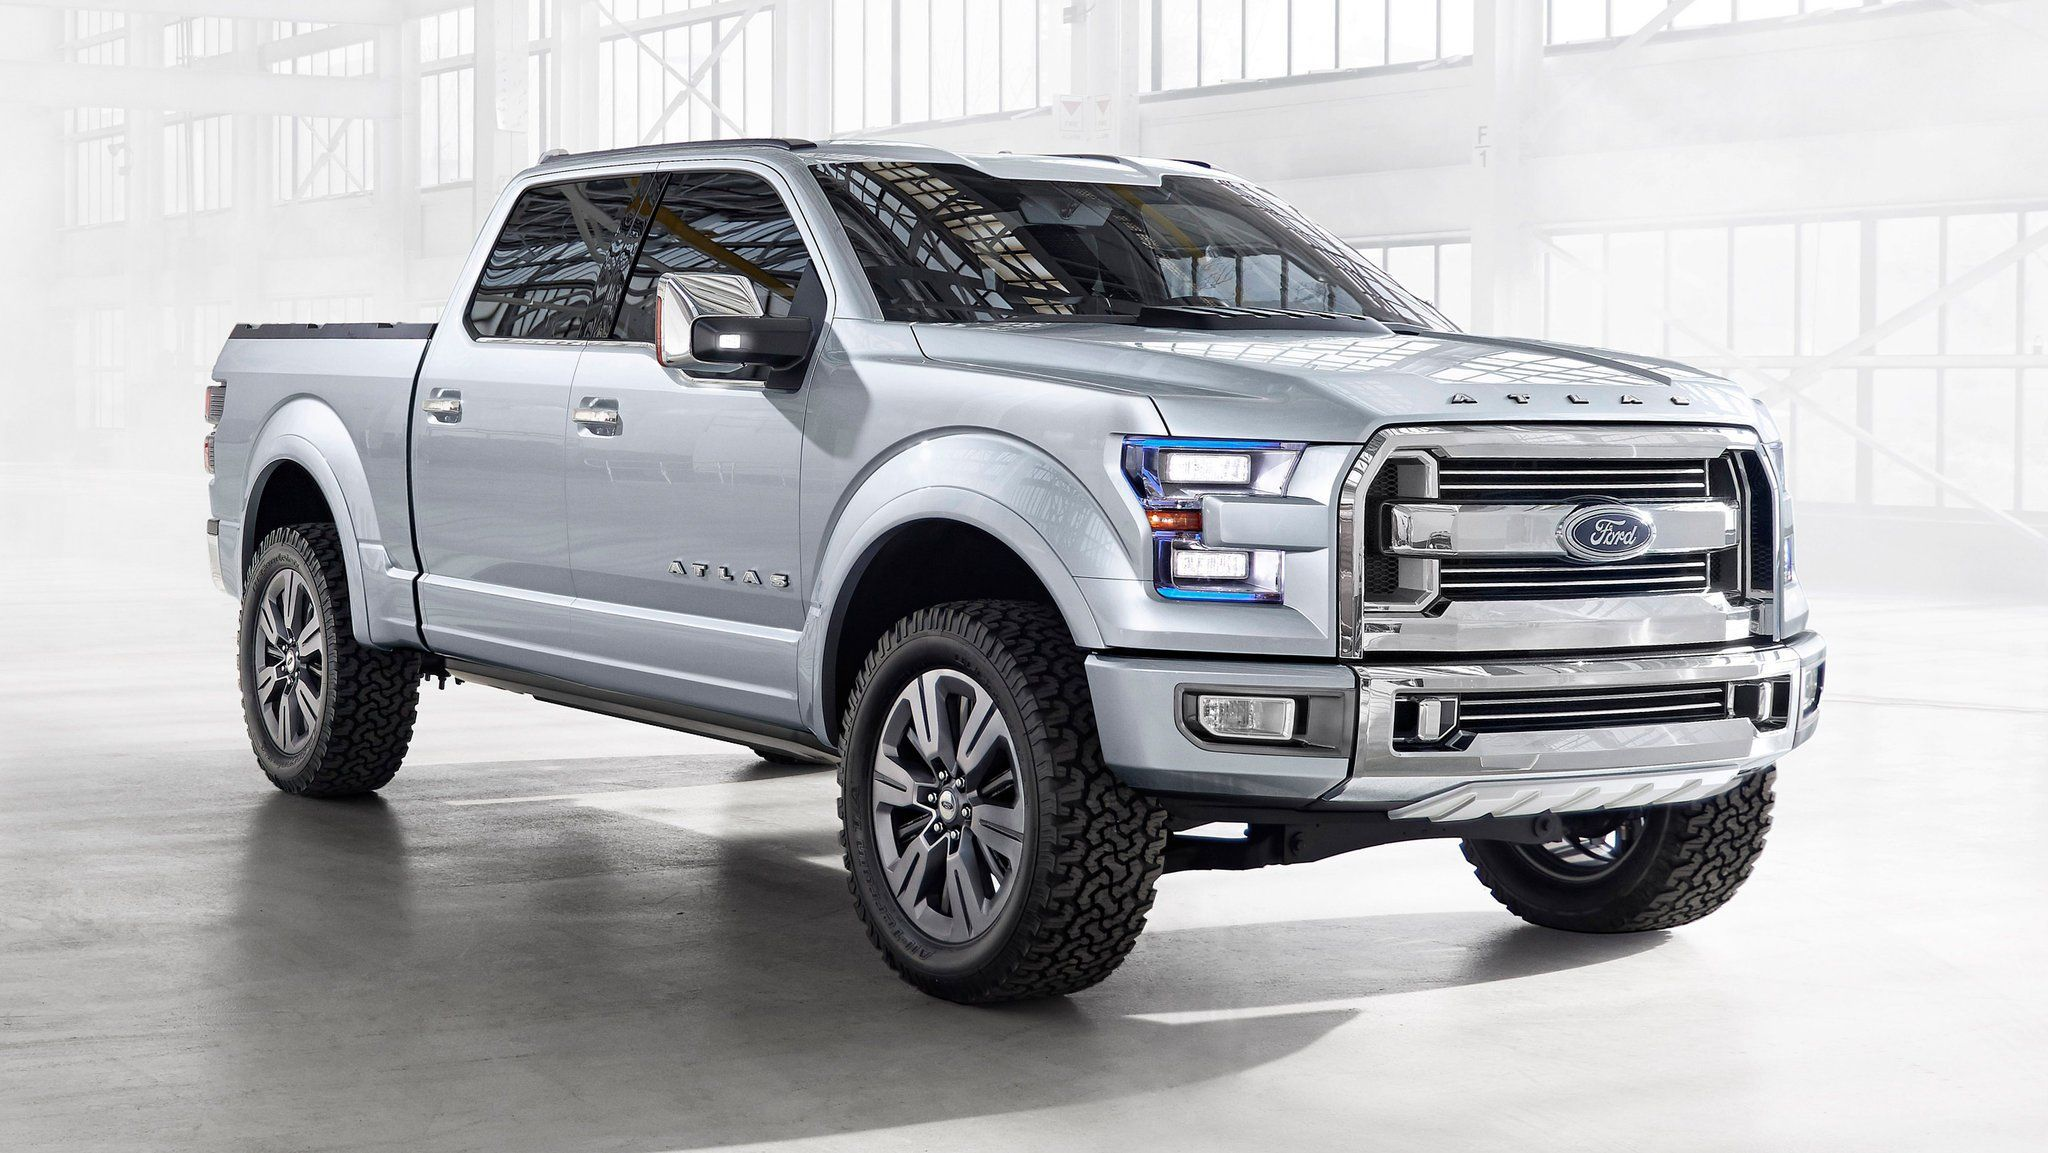 2017 Ford Atlas Price Release Date If you have seen Ford F 150